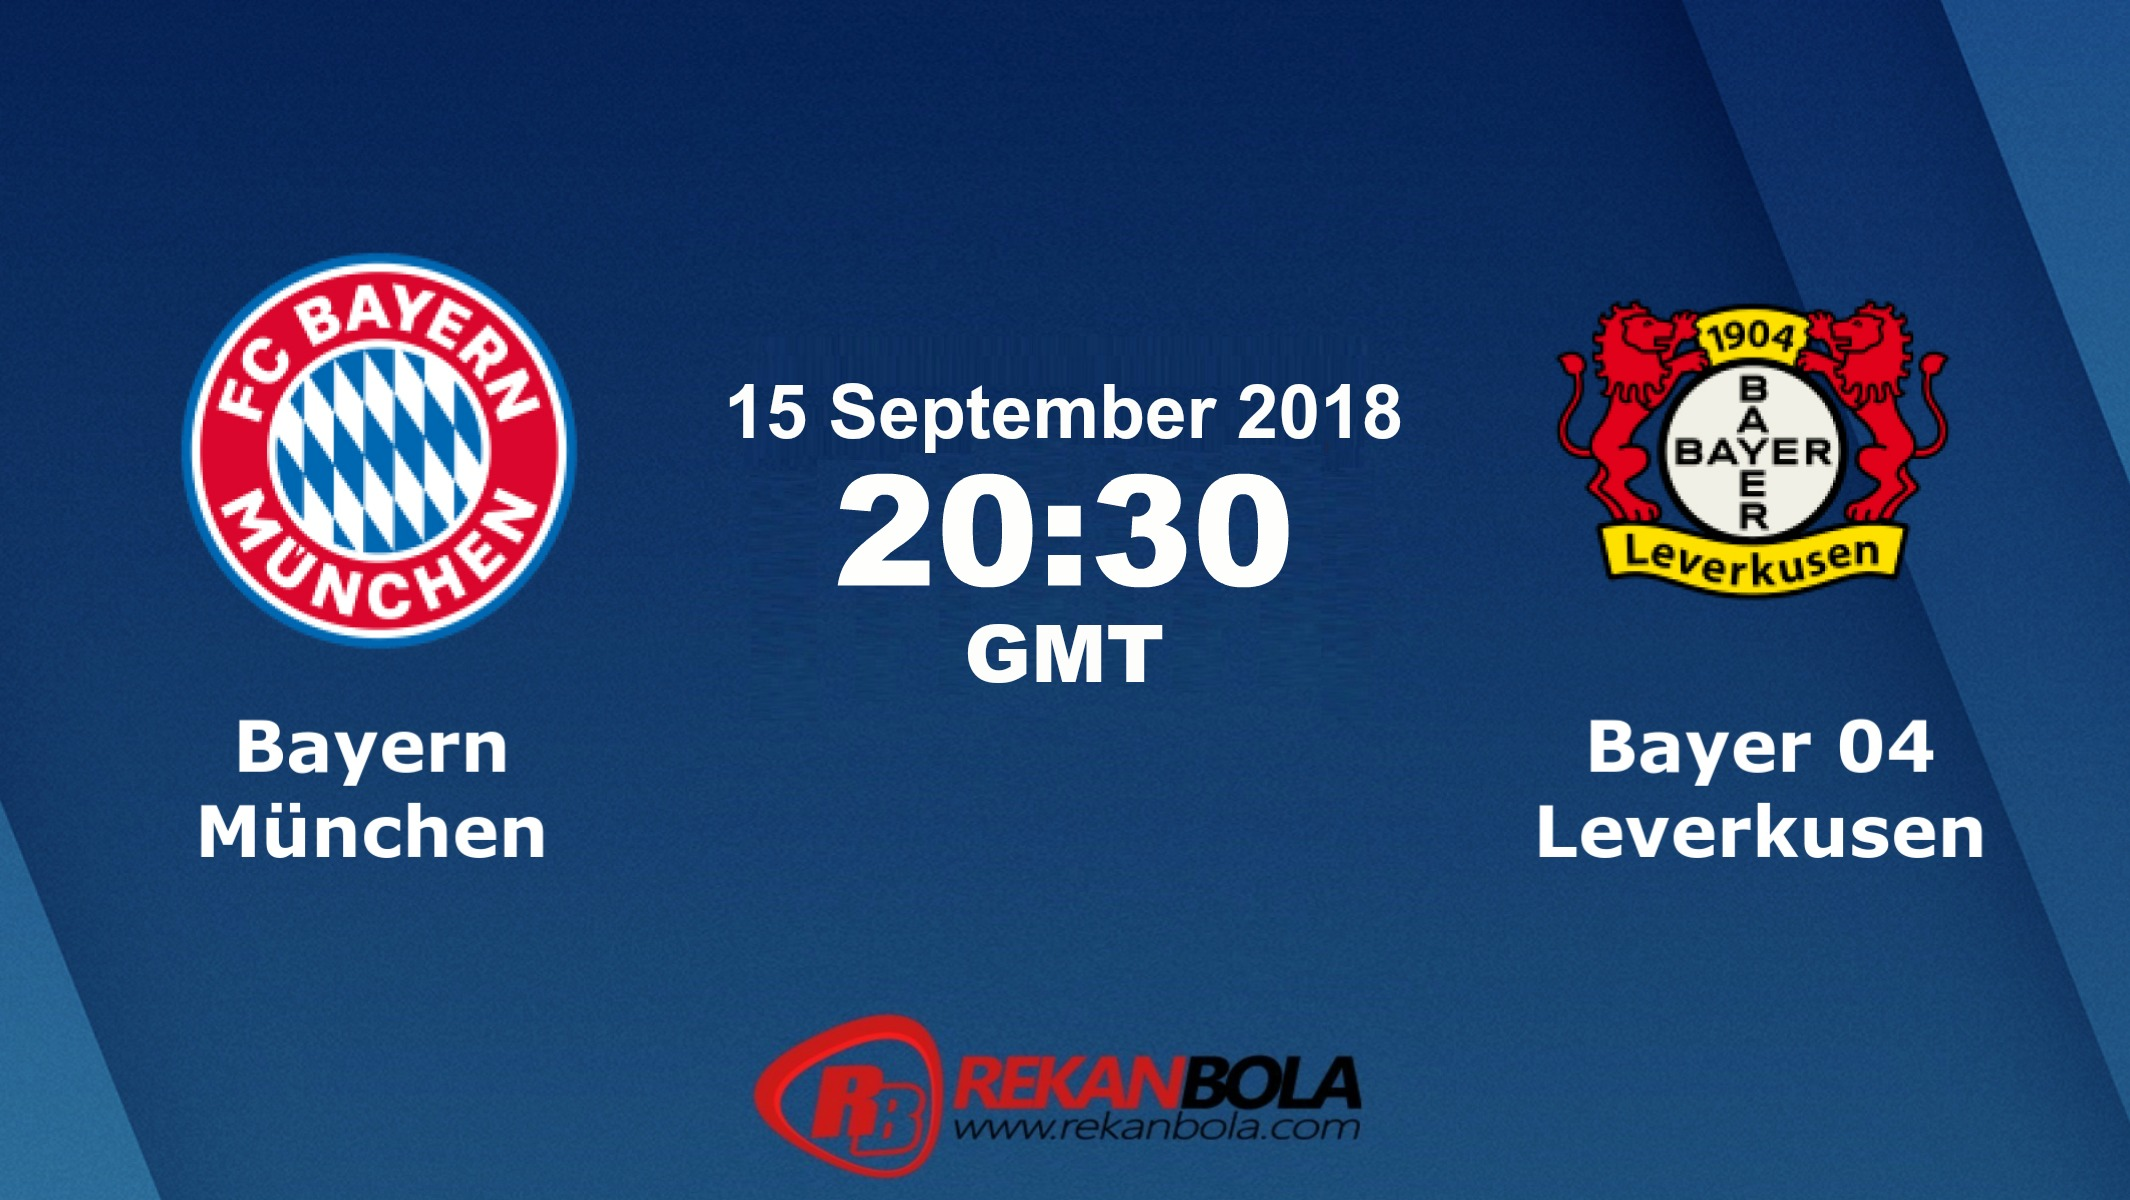 Nonton Siaran Live Streaming Bayern Vs Leverkusen 15 September 2018